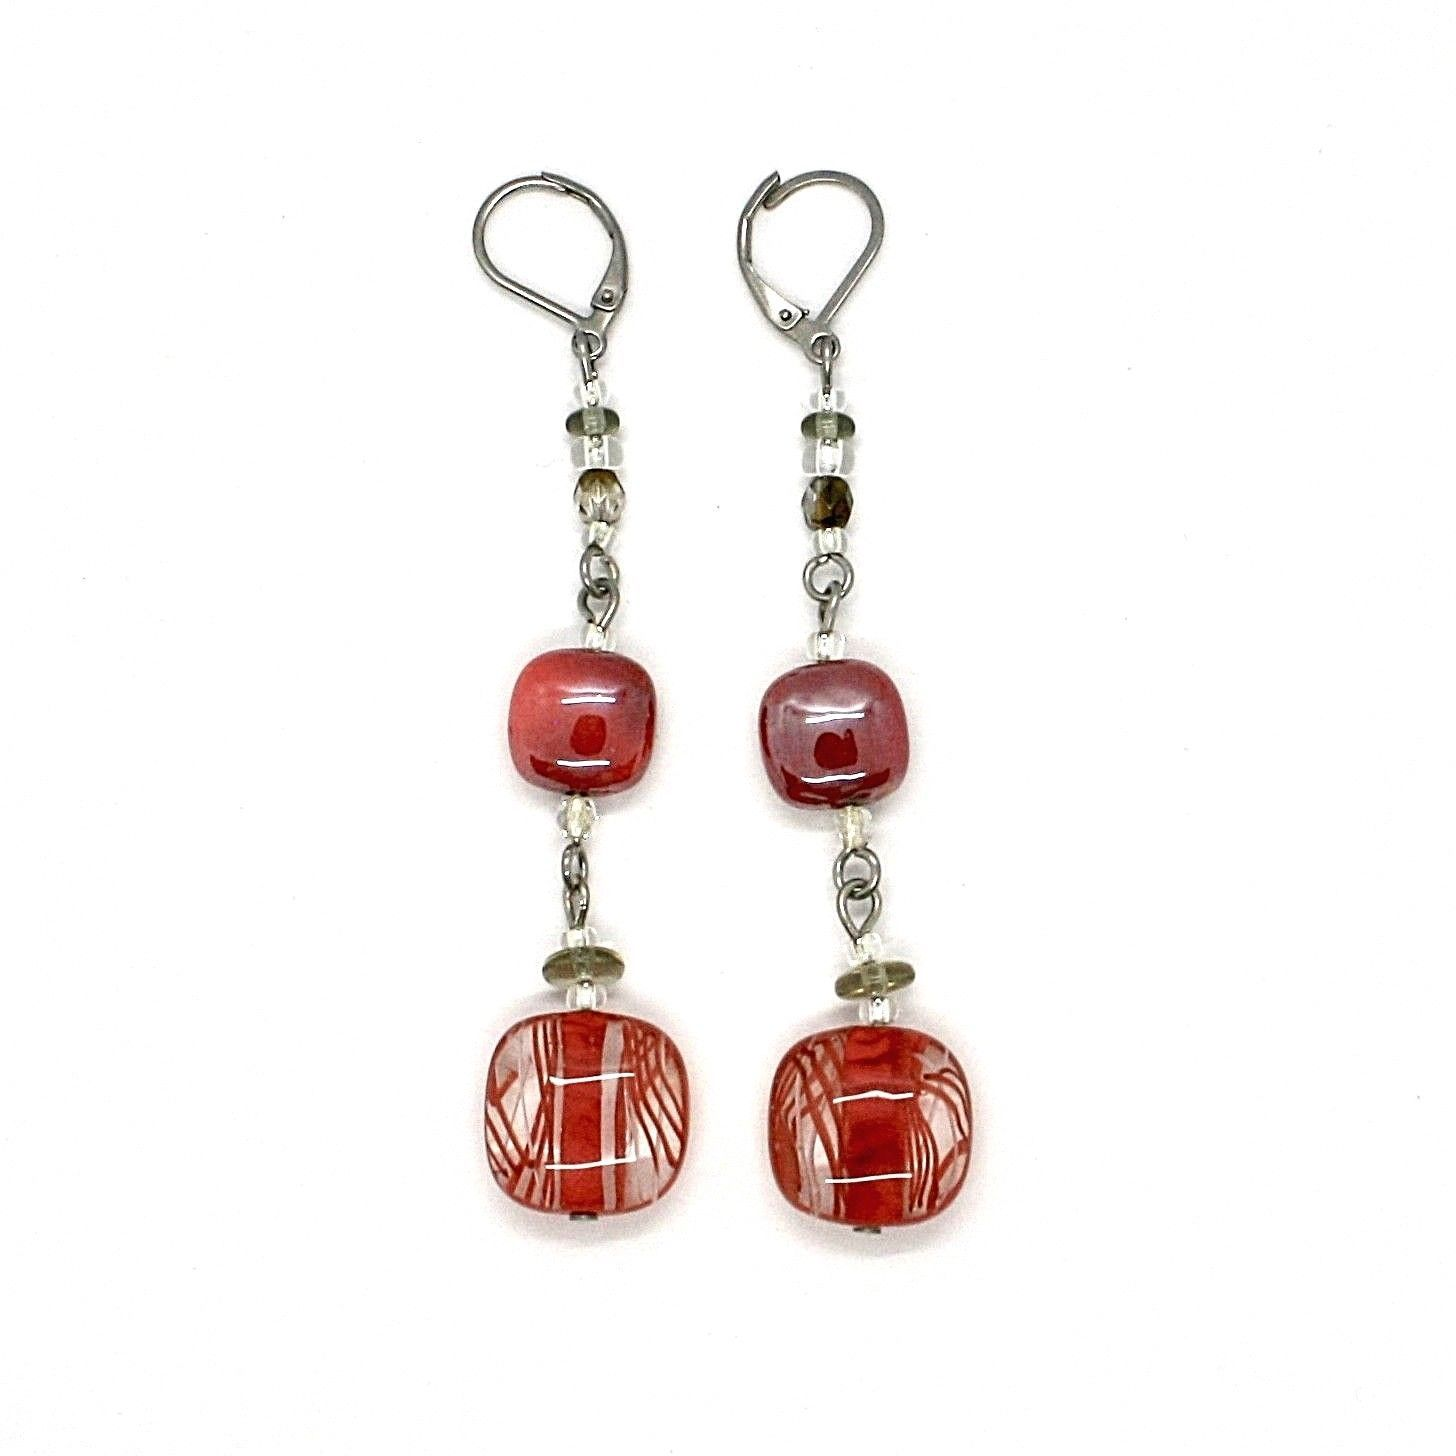 EARRINGS ANTICA MURRINA VENEZIA WITH MURANO GLASS RED AND GRAY OR509A11